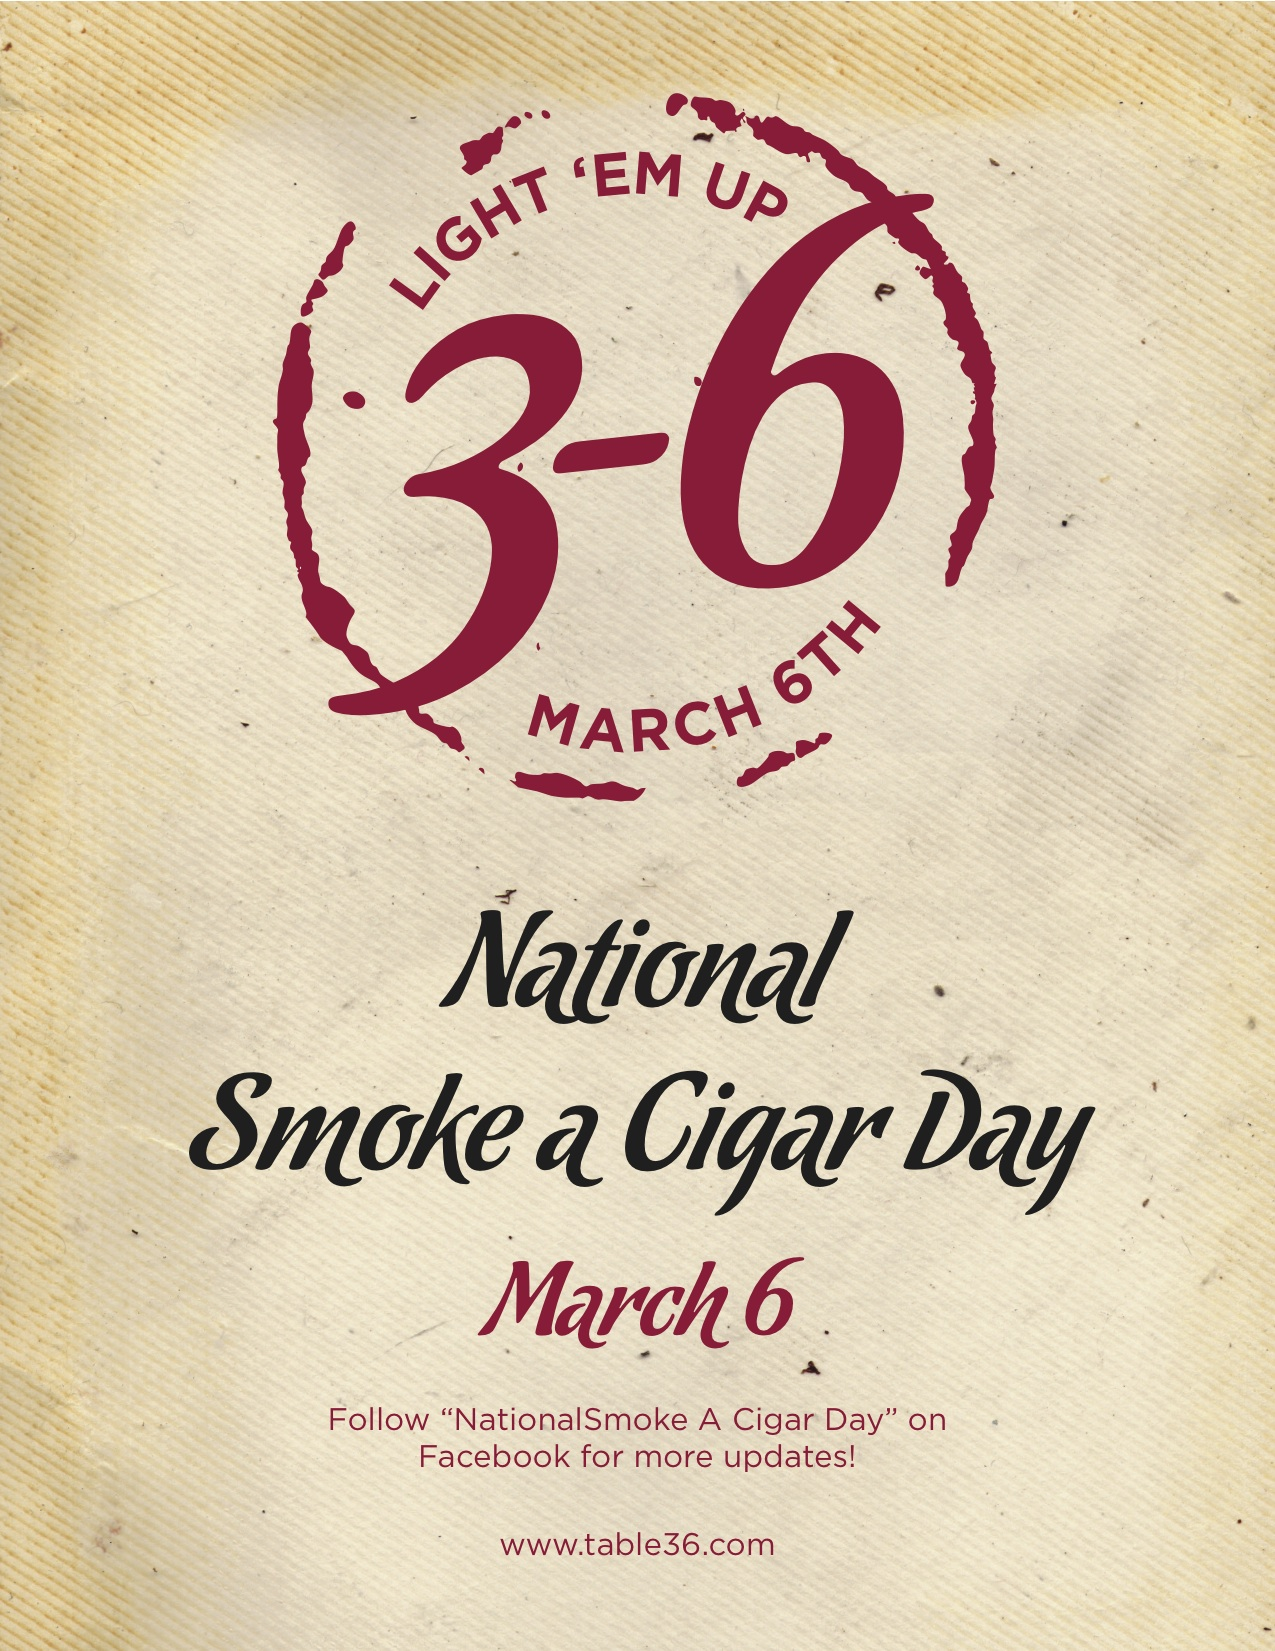 Table 36 Announces 2nd Annual National Smoke A Cigar Day (NSACD)